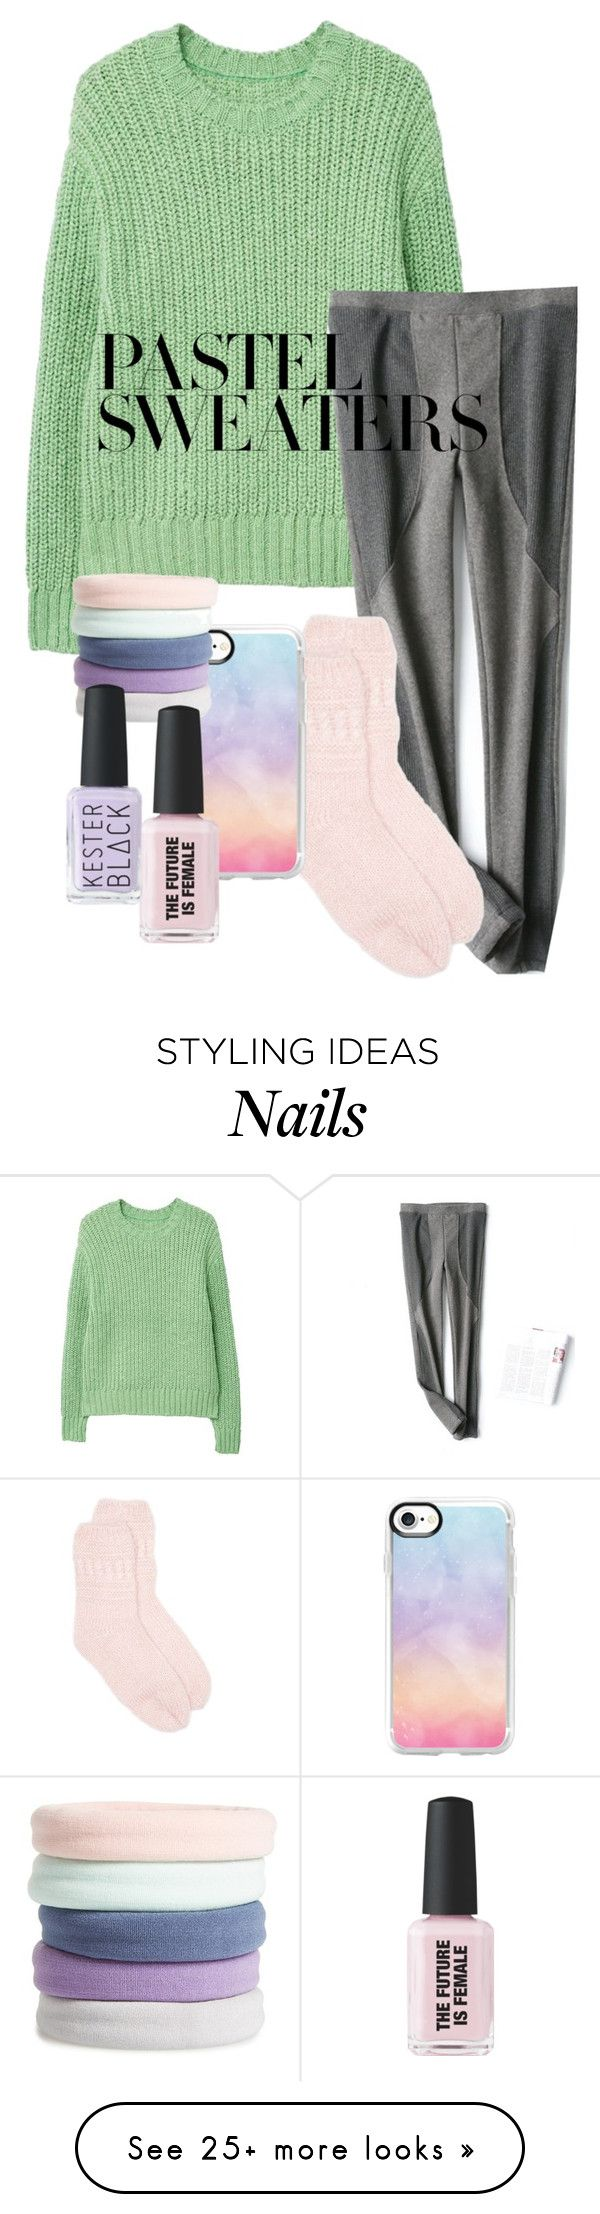 """Untitled #1634"" by twisted-magic on Polyvore featuring MANGO, New Directions, Casetify, L. Erickson and pastelsweaters"